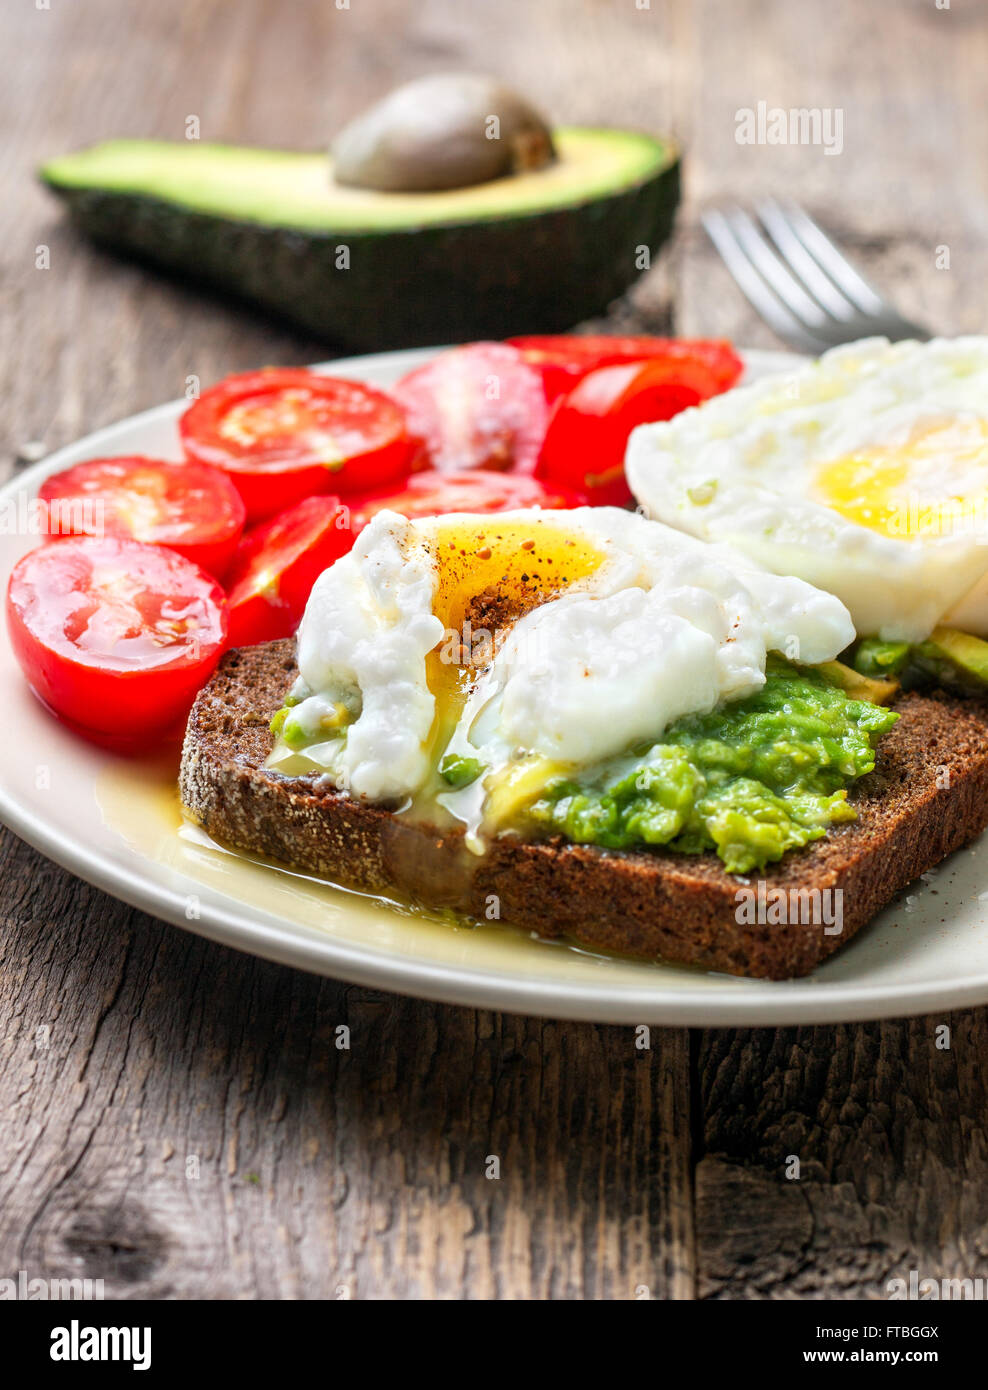 Open toast with avocado and egg, cherry tomatoes on a wooden background - Stock Image